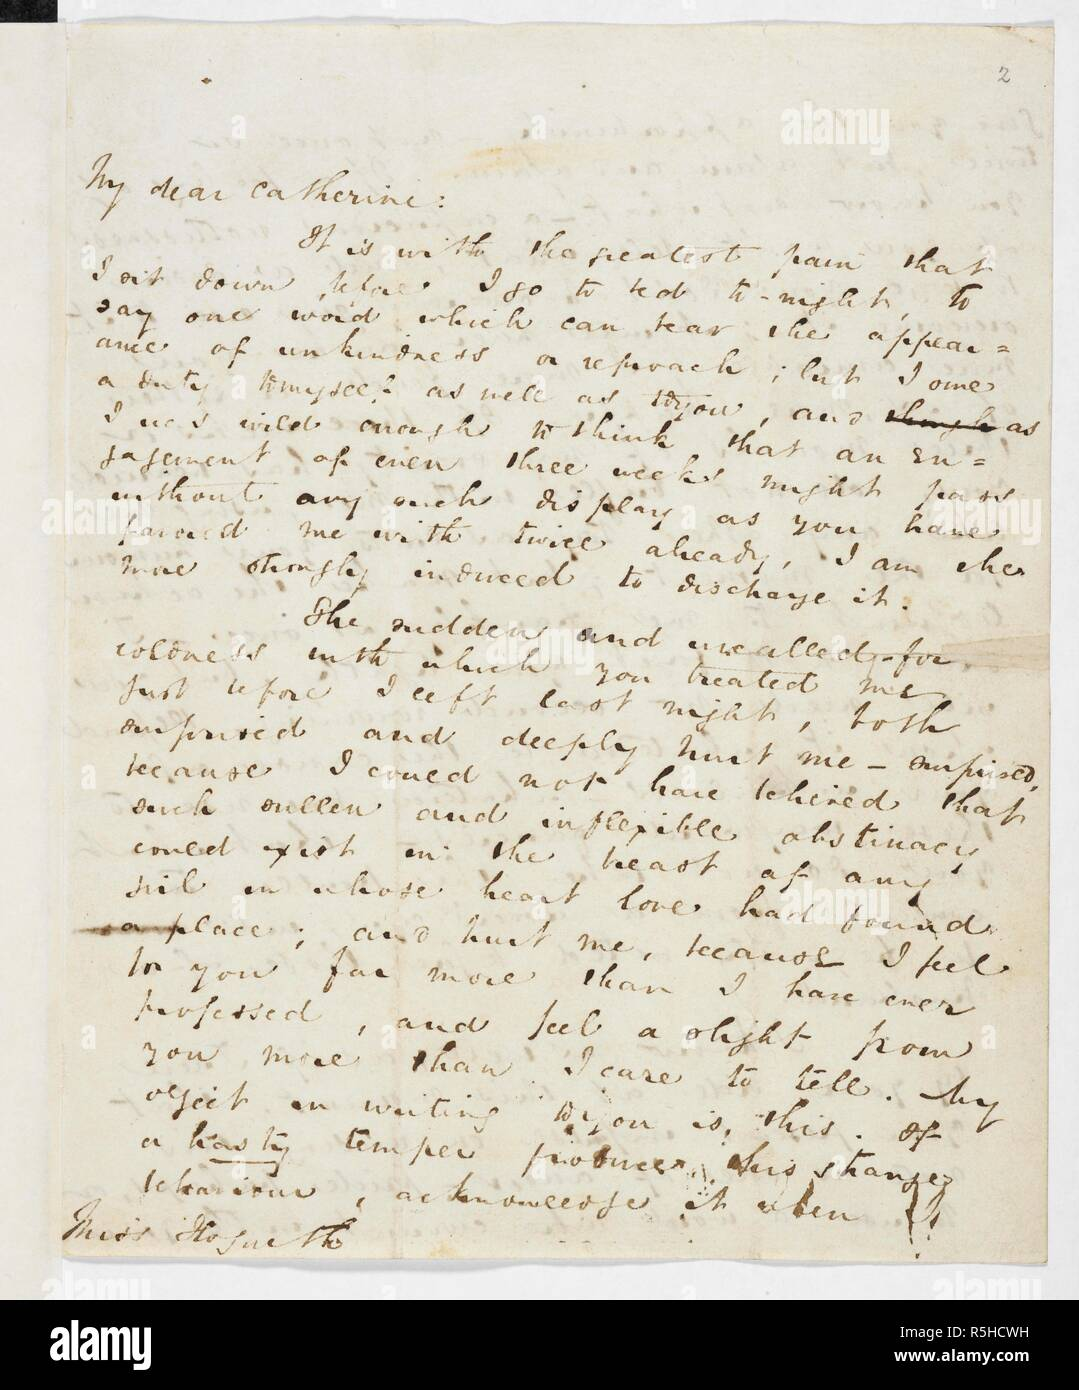 Letter from Charles Dickens to Catherine Hogarth, May 1835